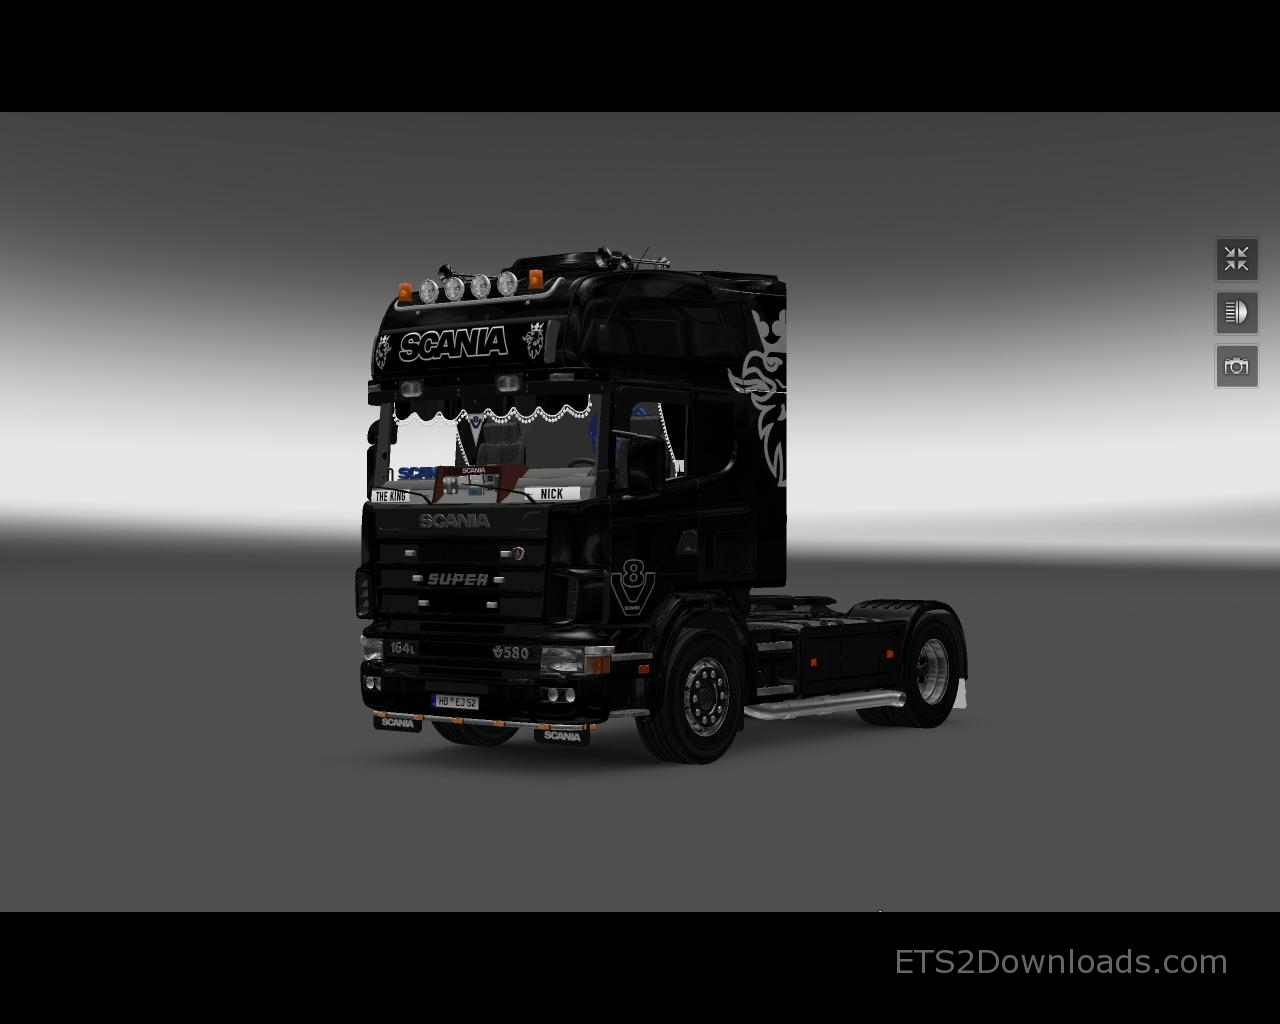 griffin-black-skin-for-scania-1